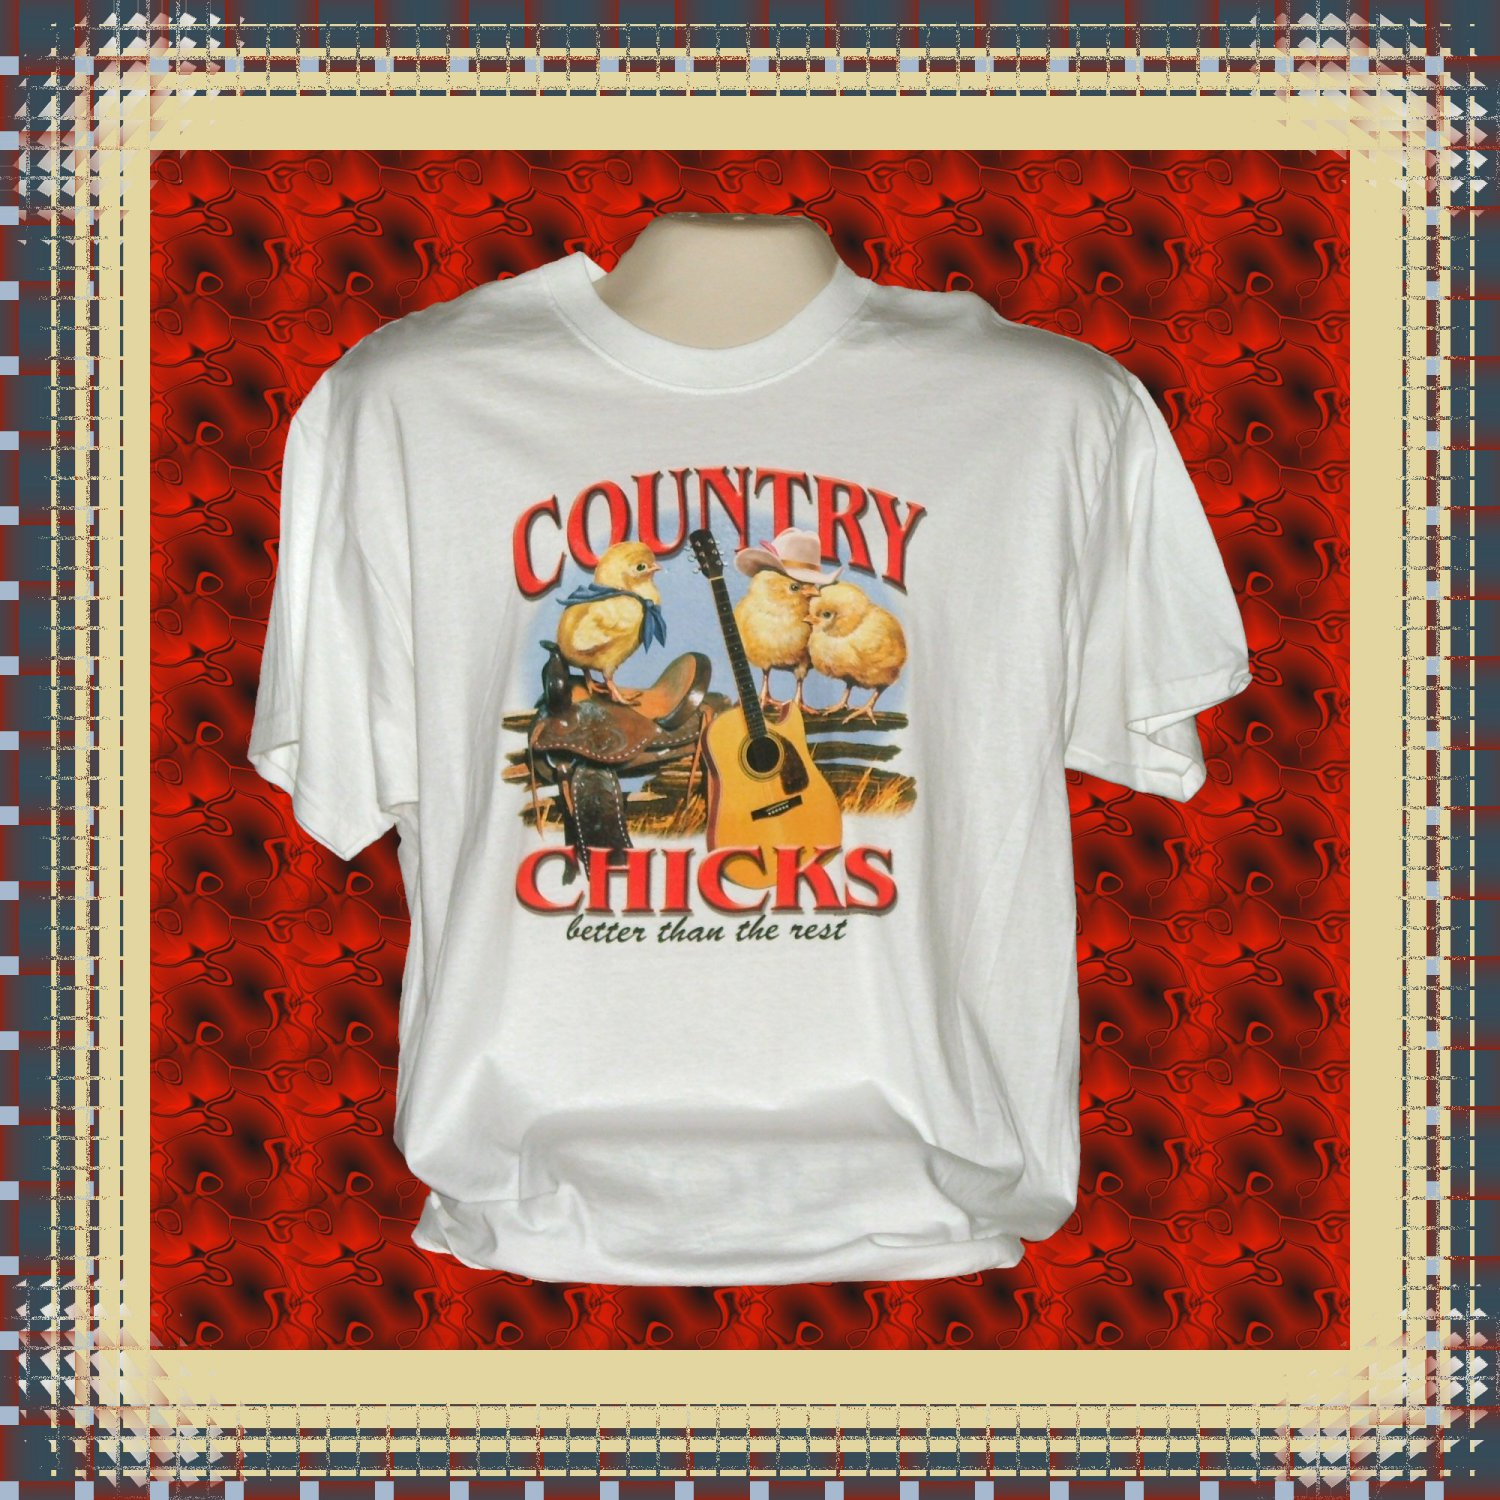 Country Chicks Better Than The Rest Cotton T-Shirt Large